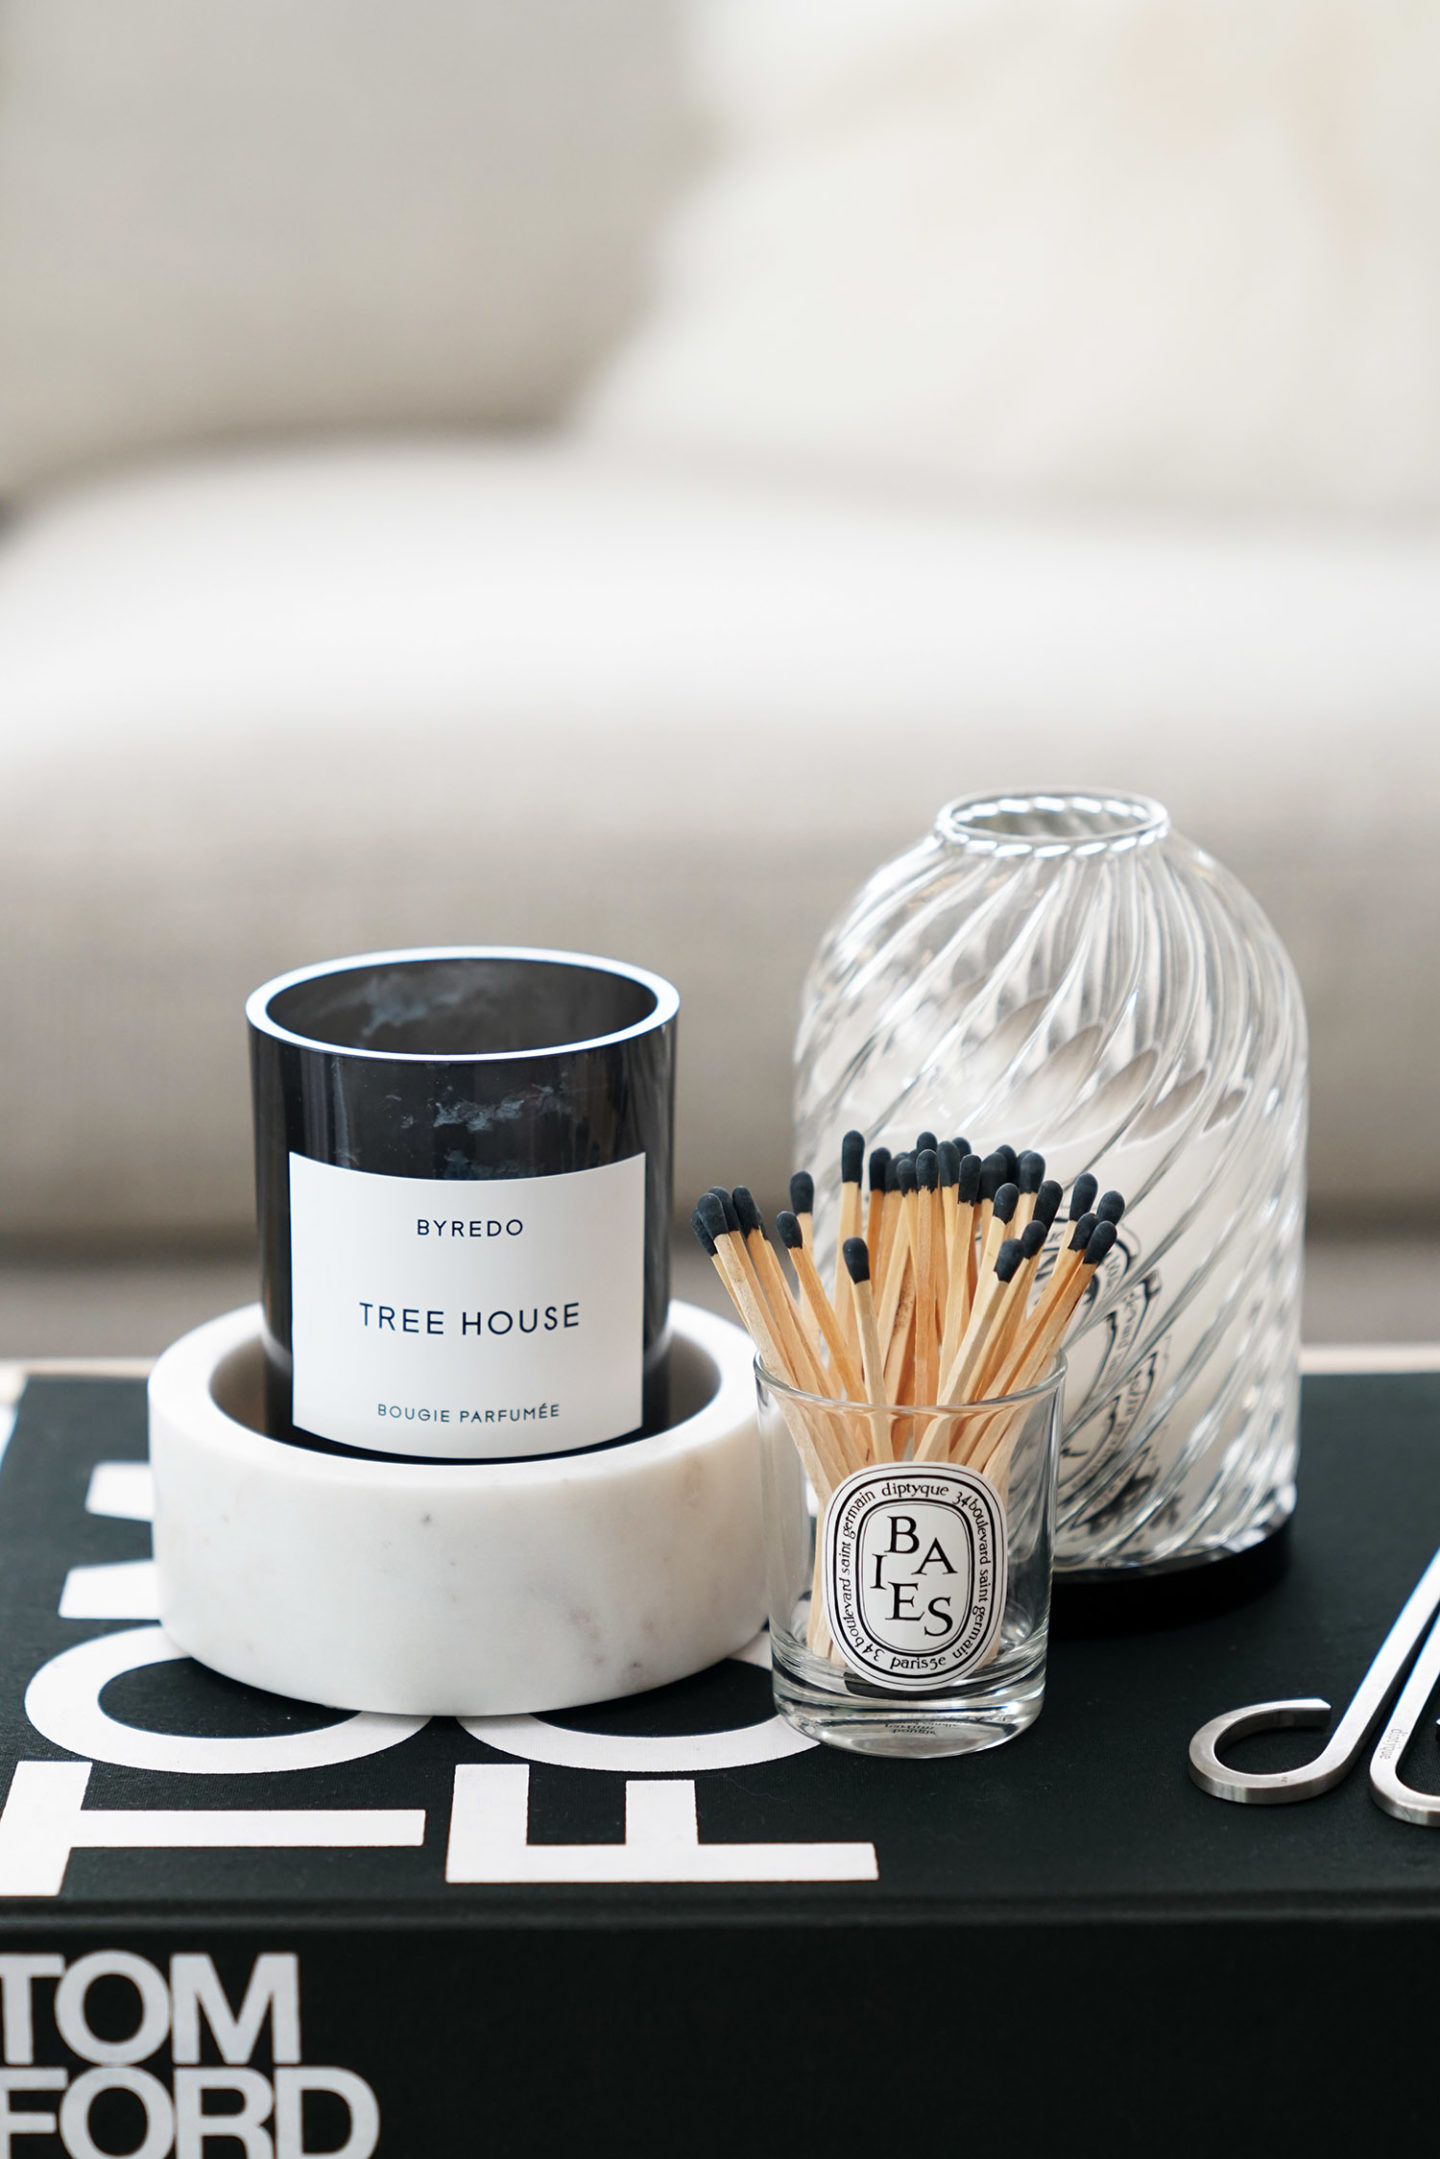 Byredo Candle, Marble Wine Coaster, Diptyque Photophore